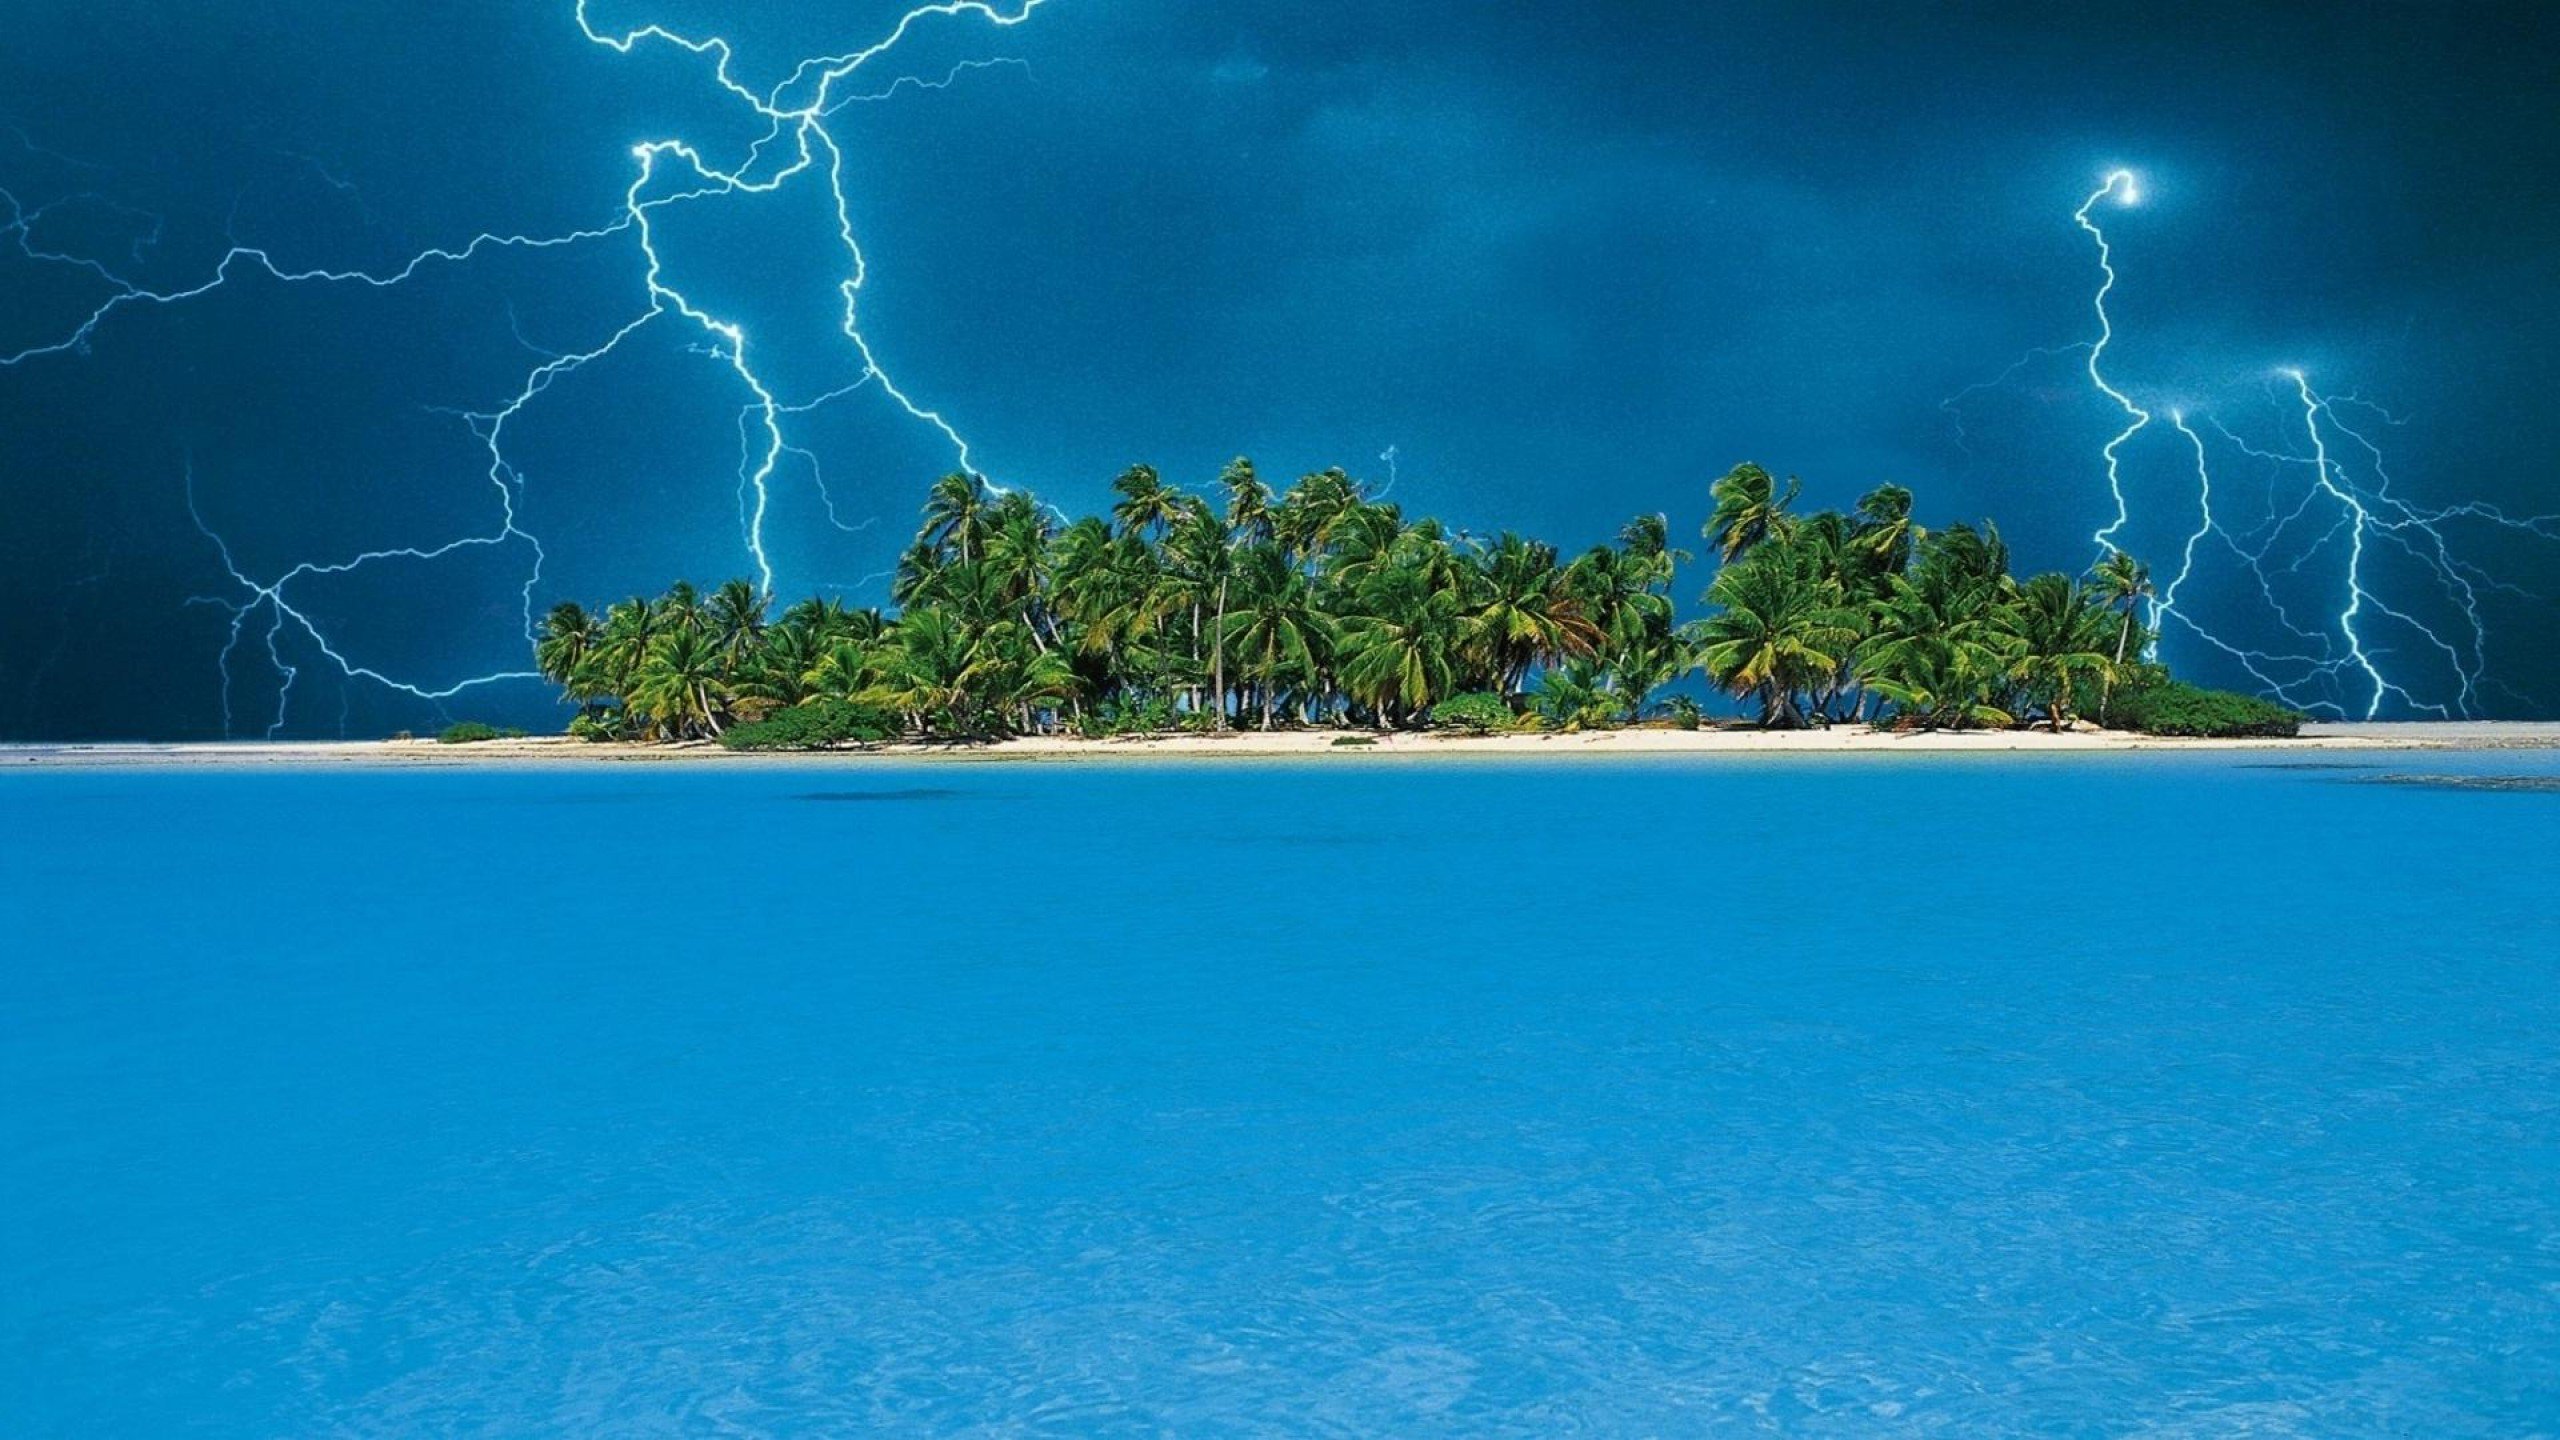 Pics Photos - Tropical Background Wallpaper In 1280x720